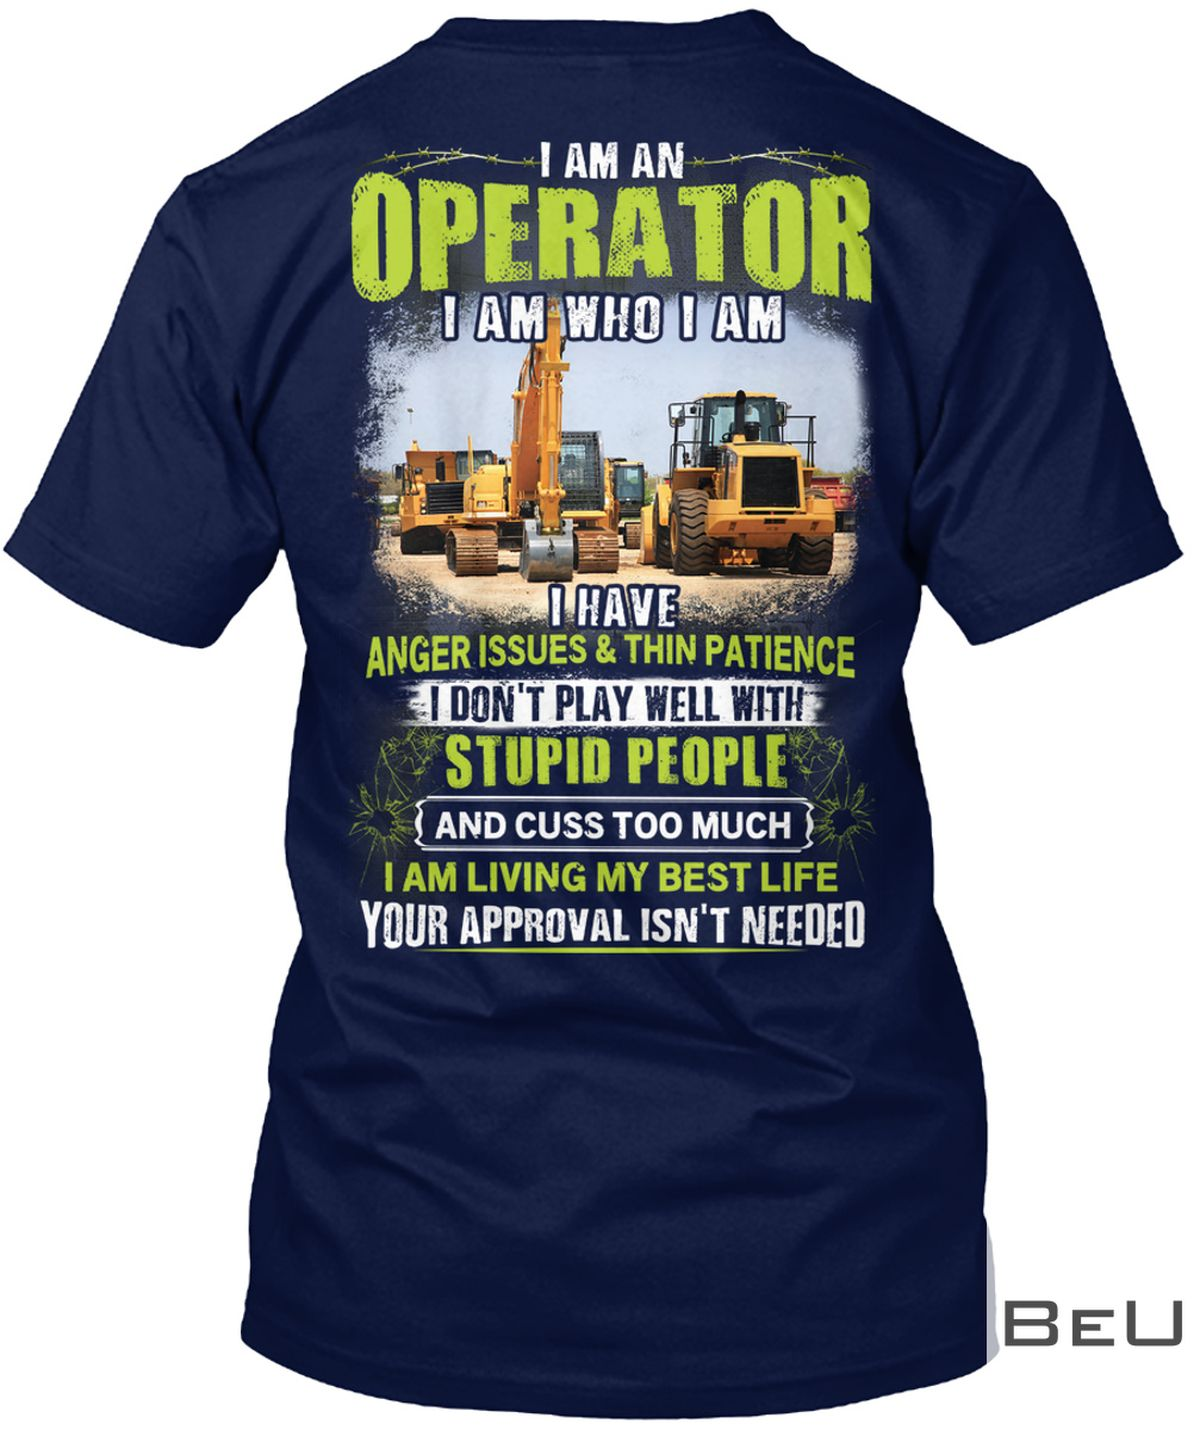 I Am An Operator I Am Who I Am I Have Anger Issues & Thin Patience Shirt